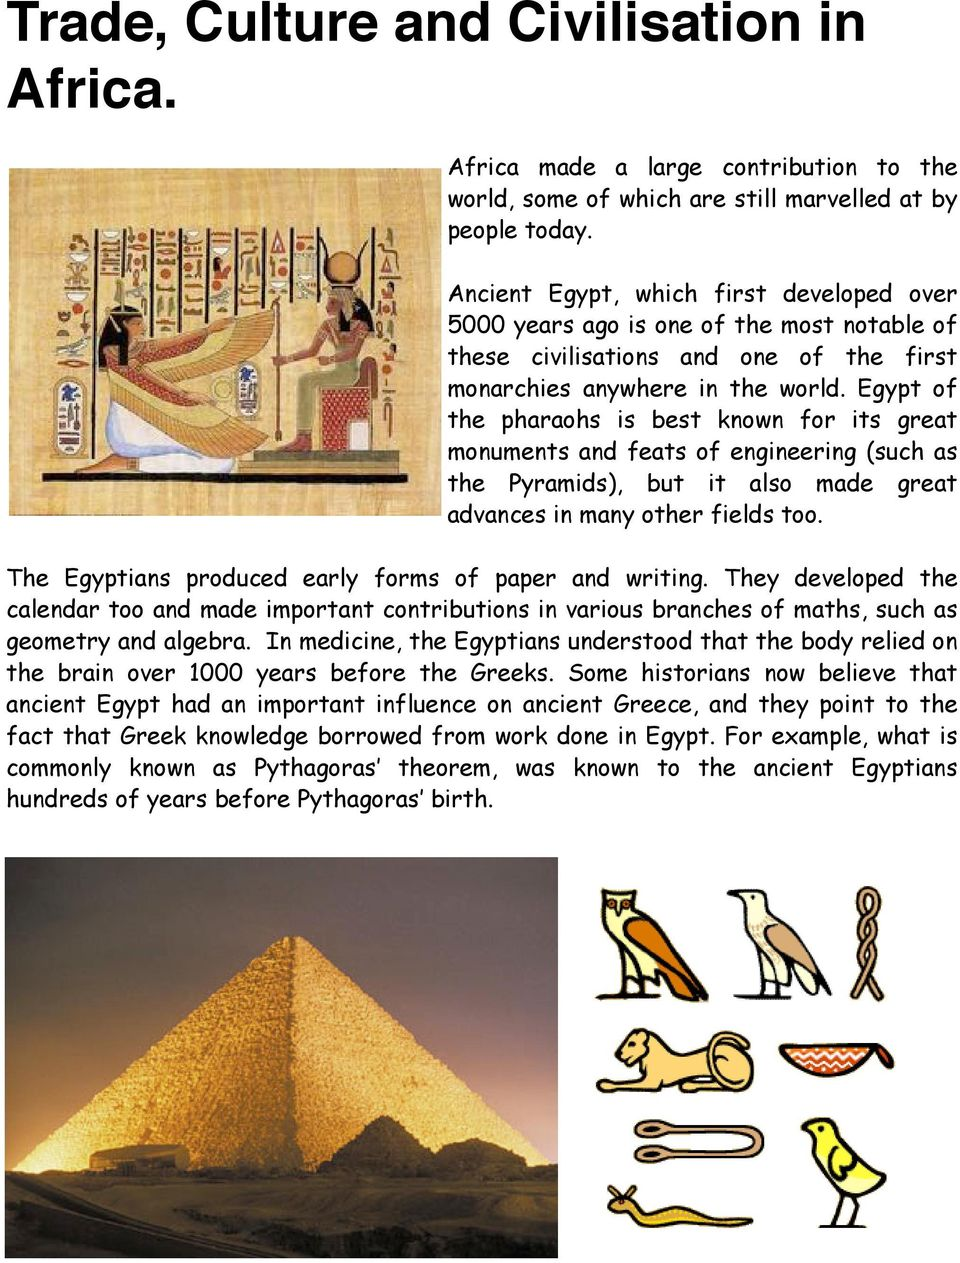 Egypt of the pharaohs is best known for its great monuments and feats of engineering (such as the Pyramids), but it also made great advances in many other fields too.